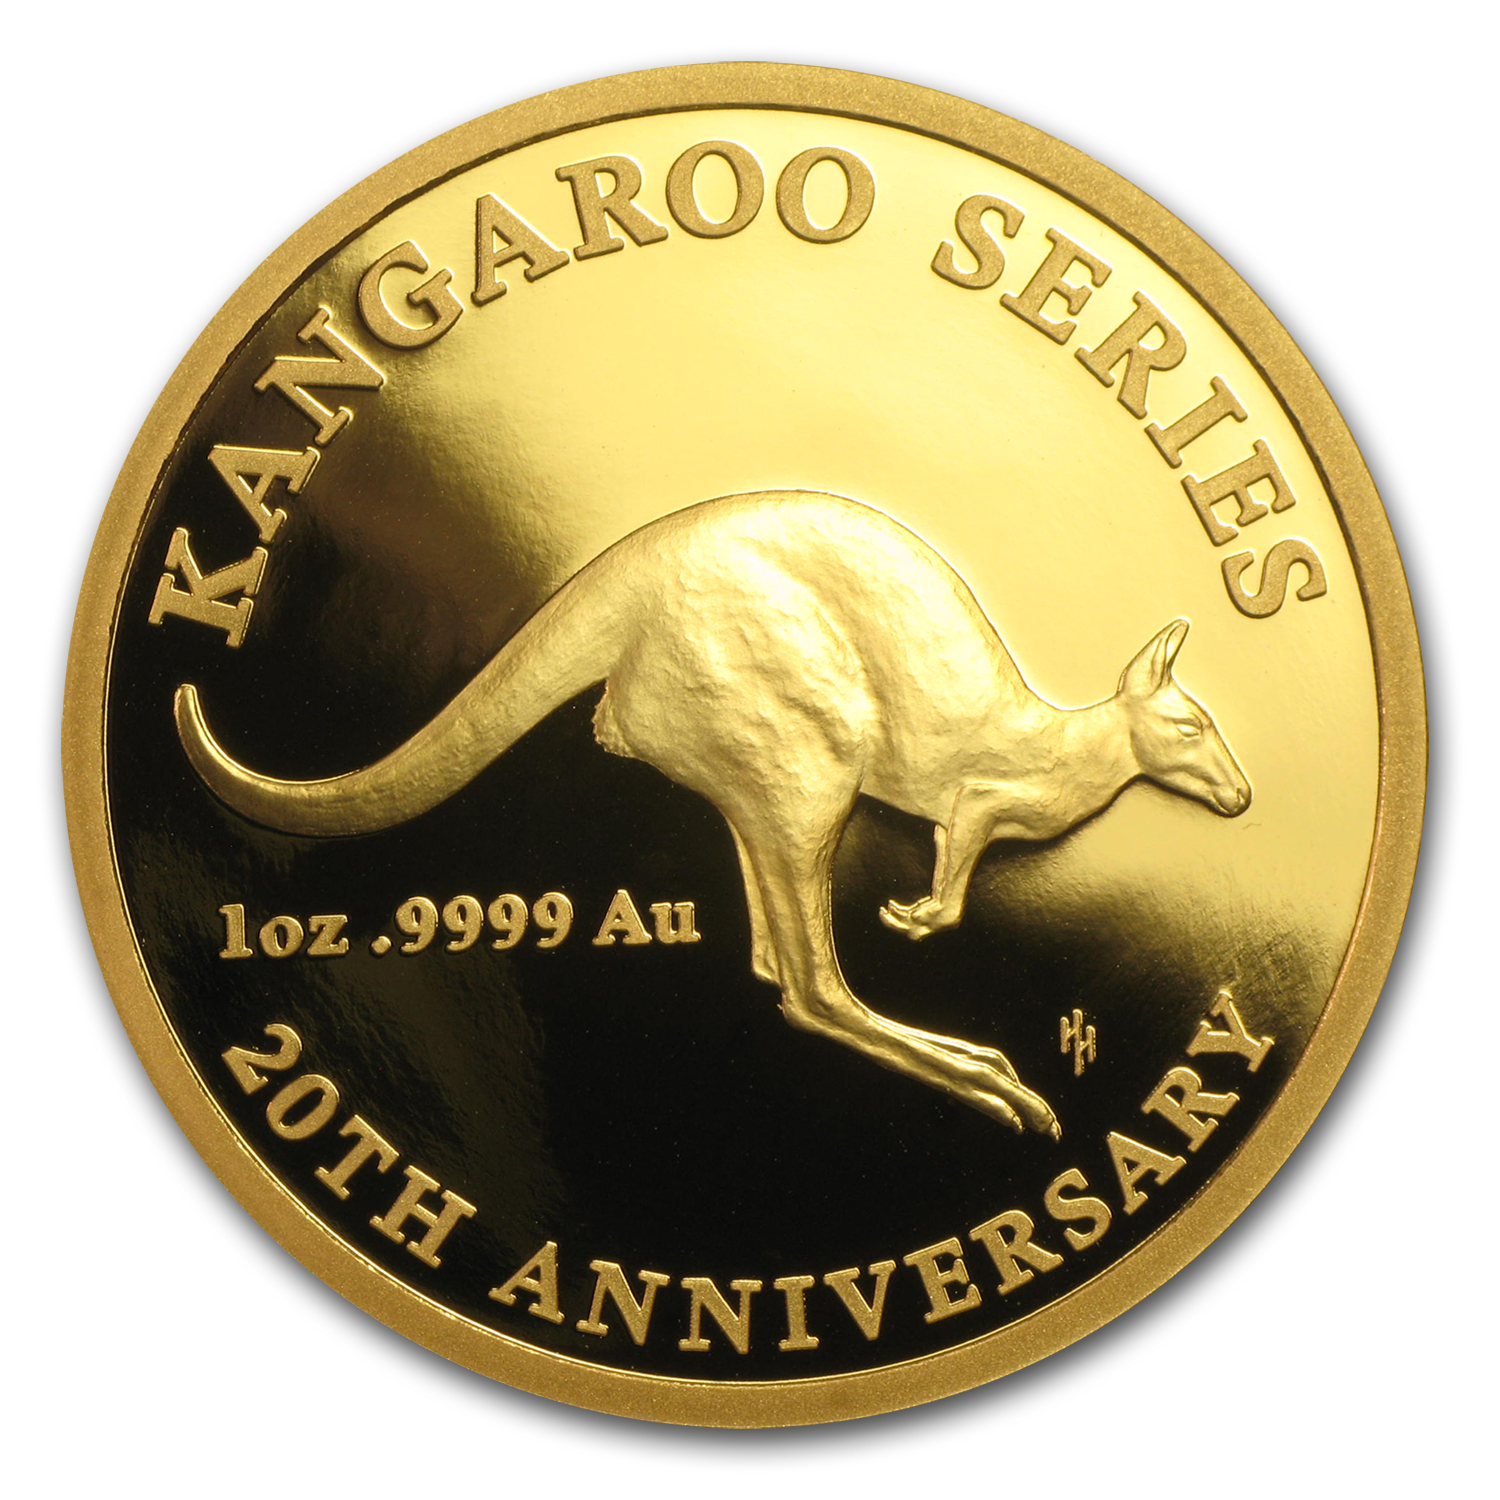 2013 Australia 1 oz Prf Gold $100 20th Anniv Kangaroo